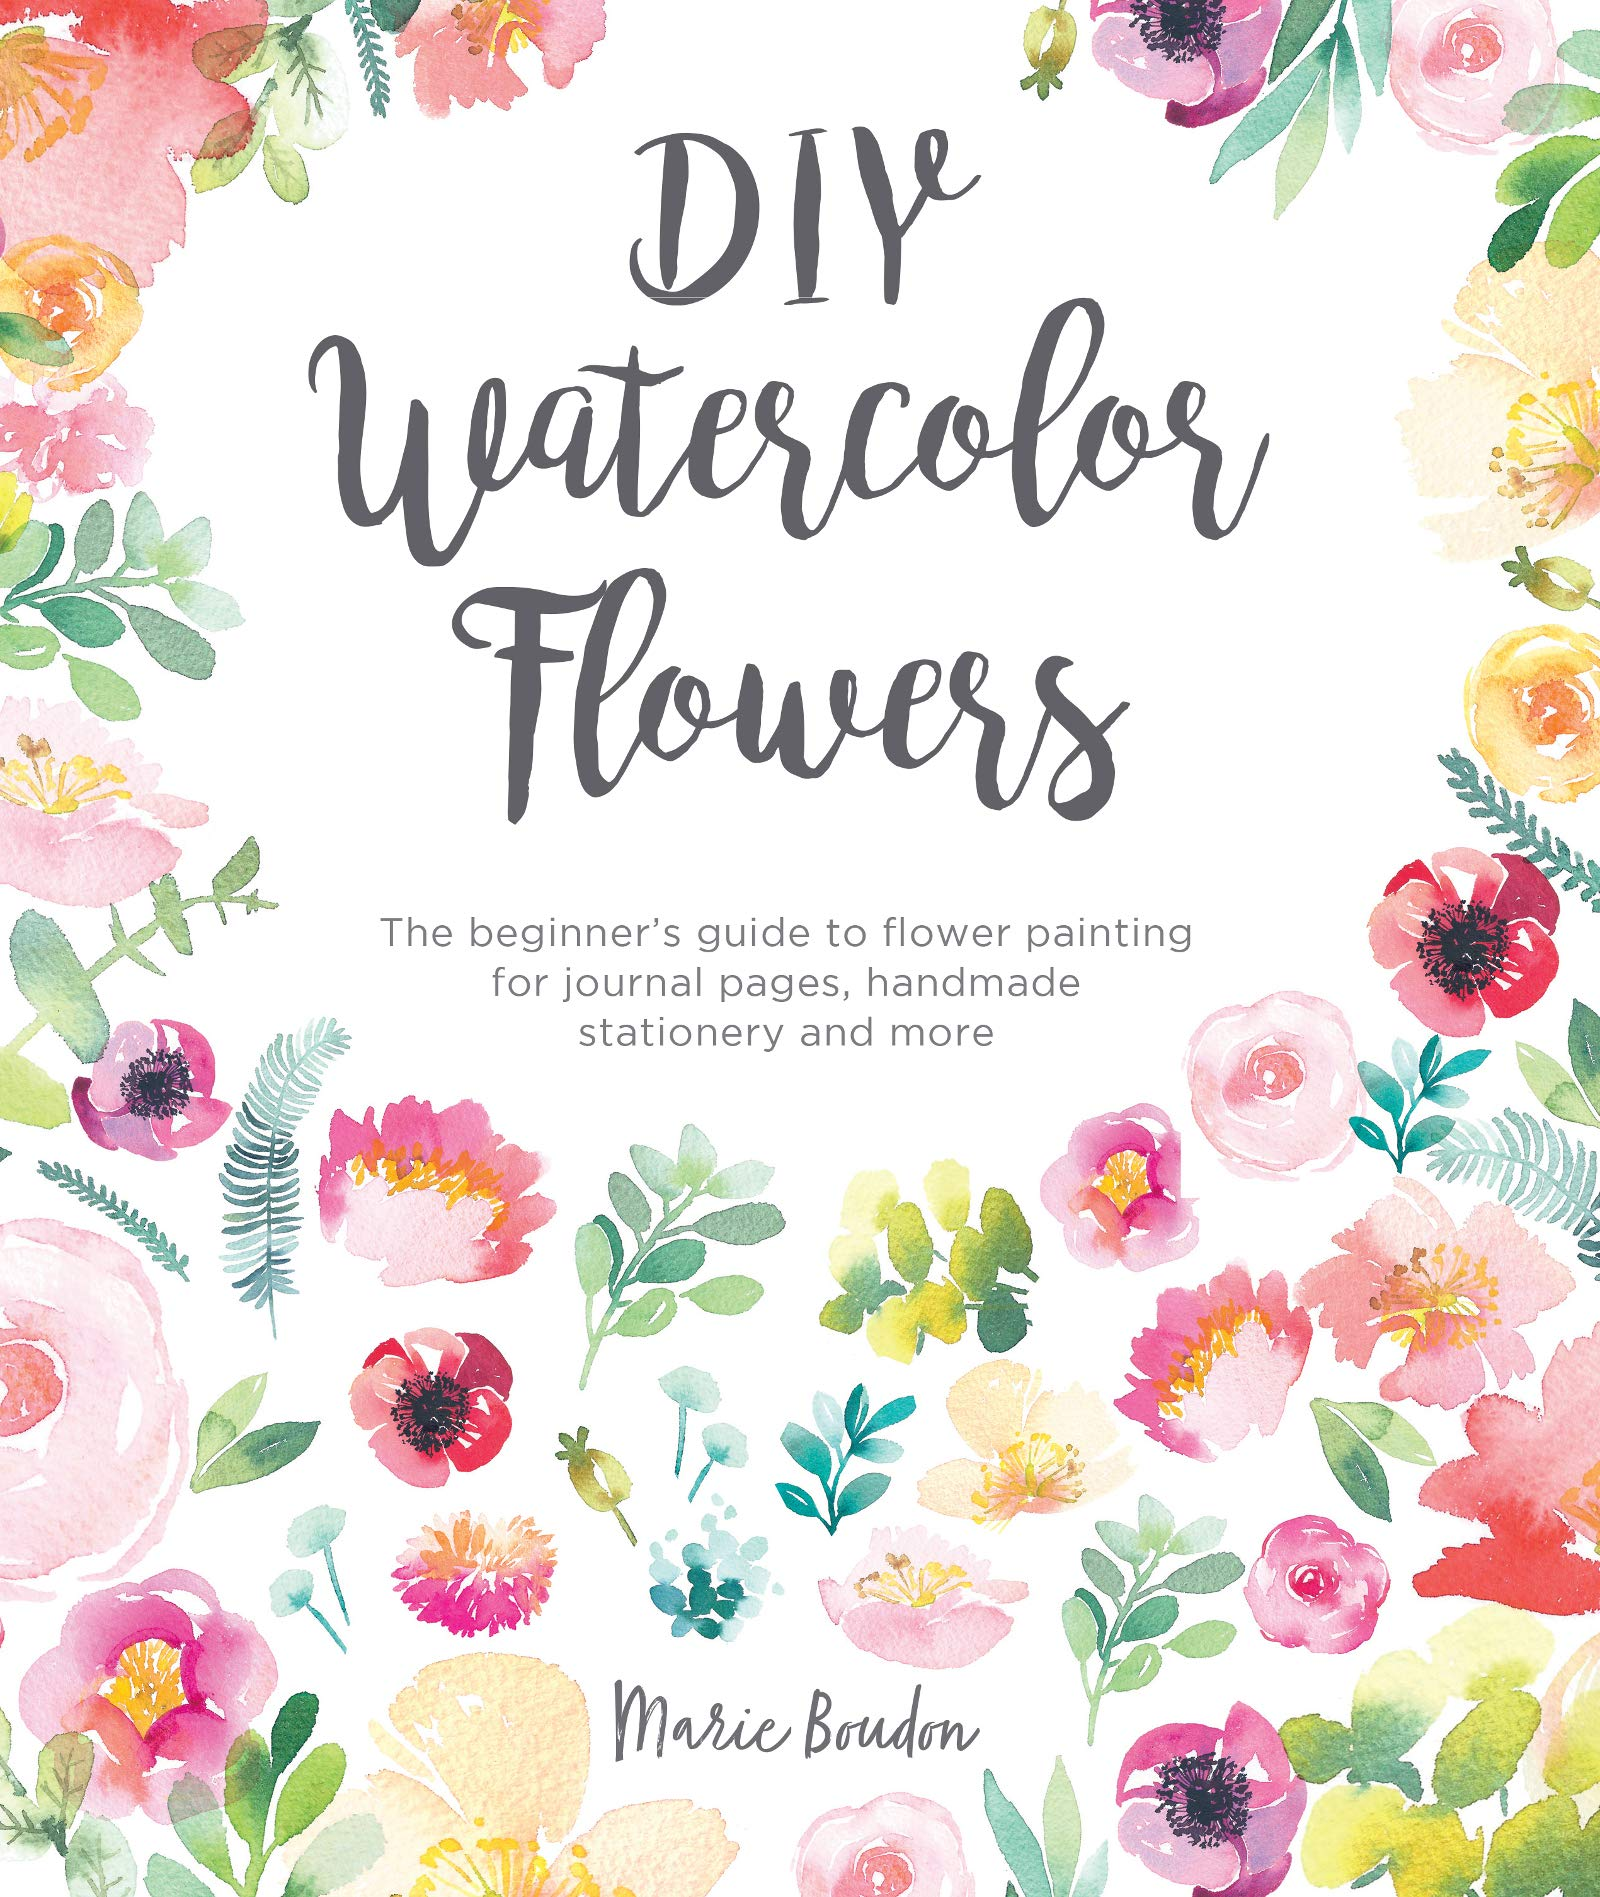 Diy Watercolor Flowers The Beginner S Guide To Flower Painting